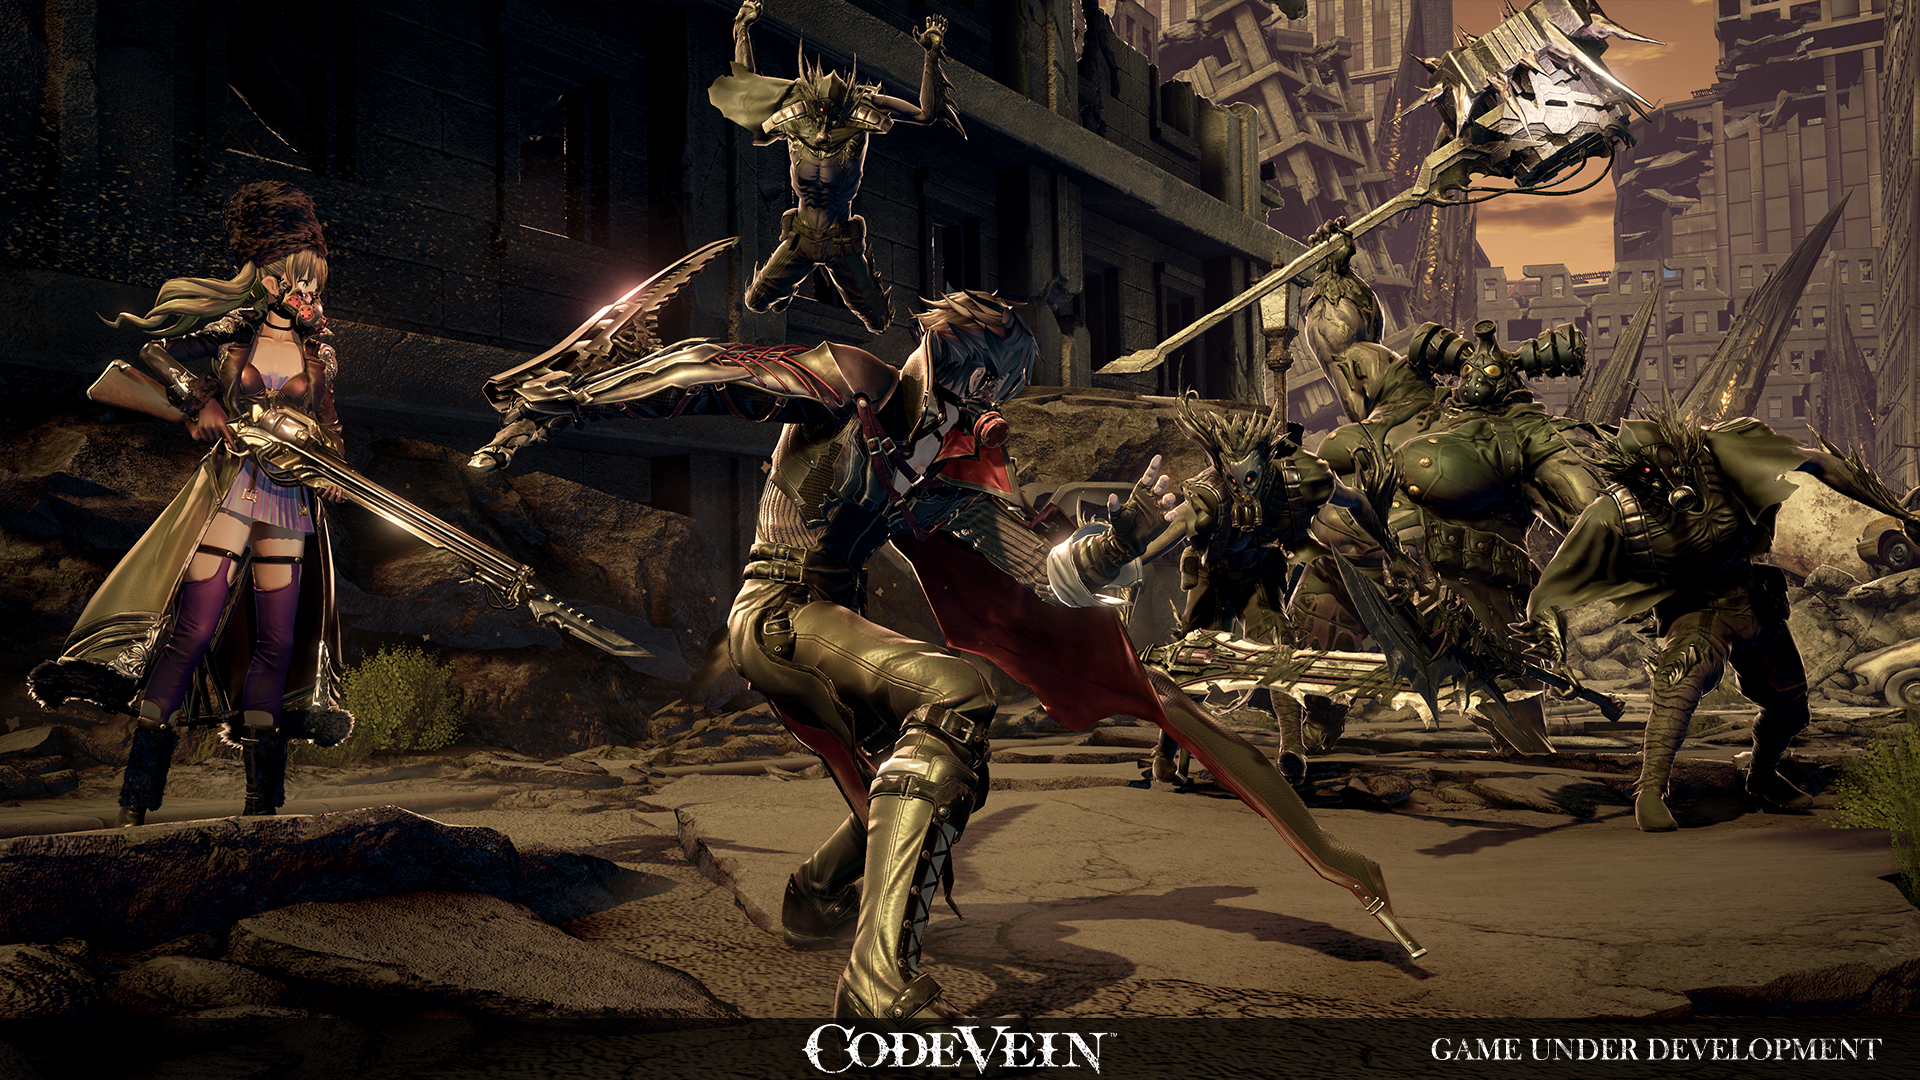 Bandai Namco's Code Vein Releasing Next Year